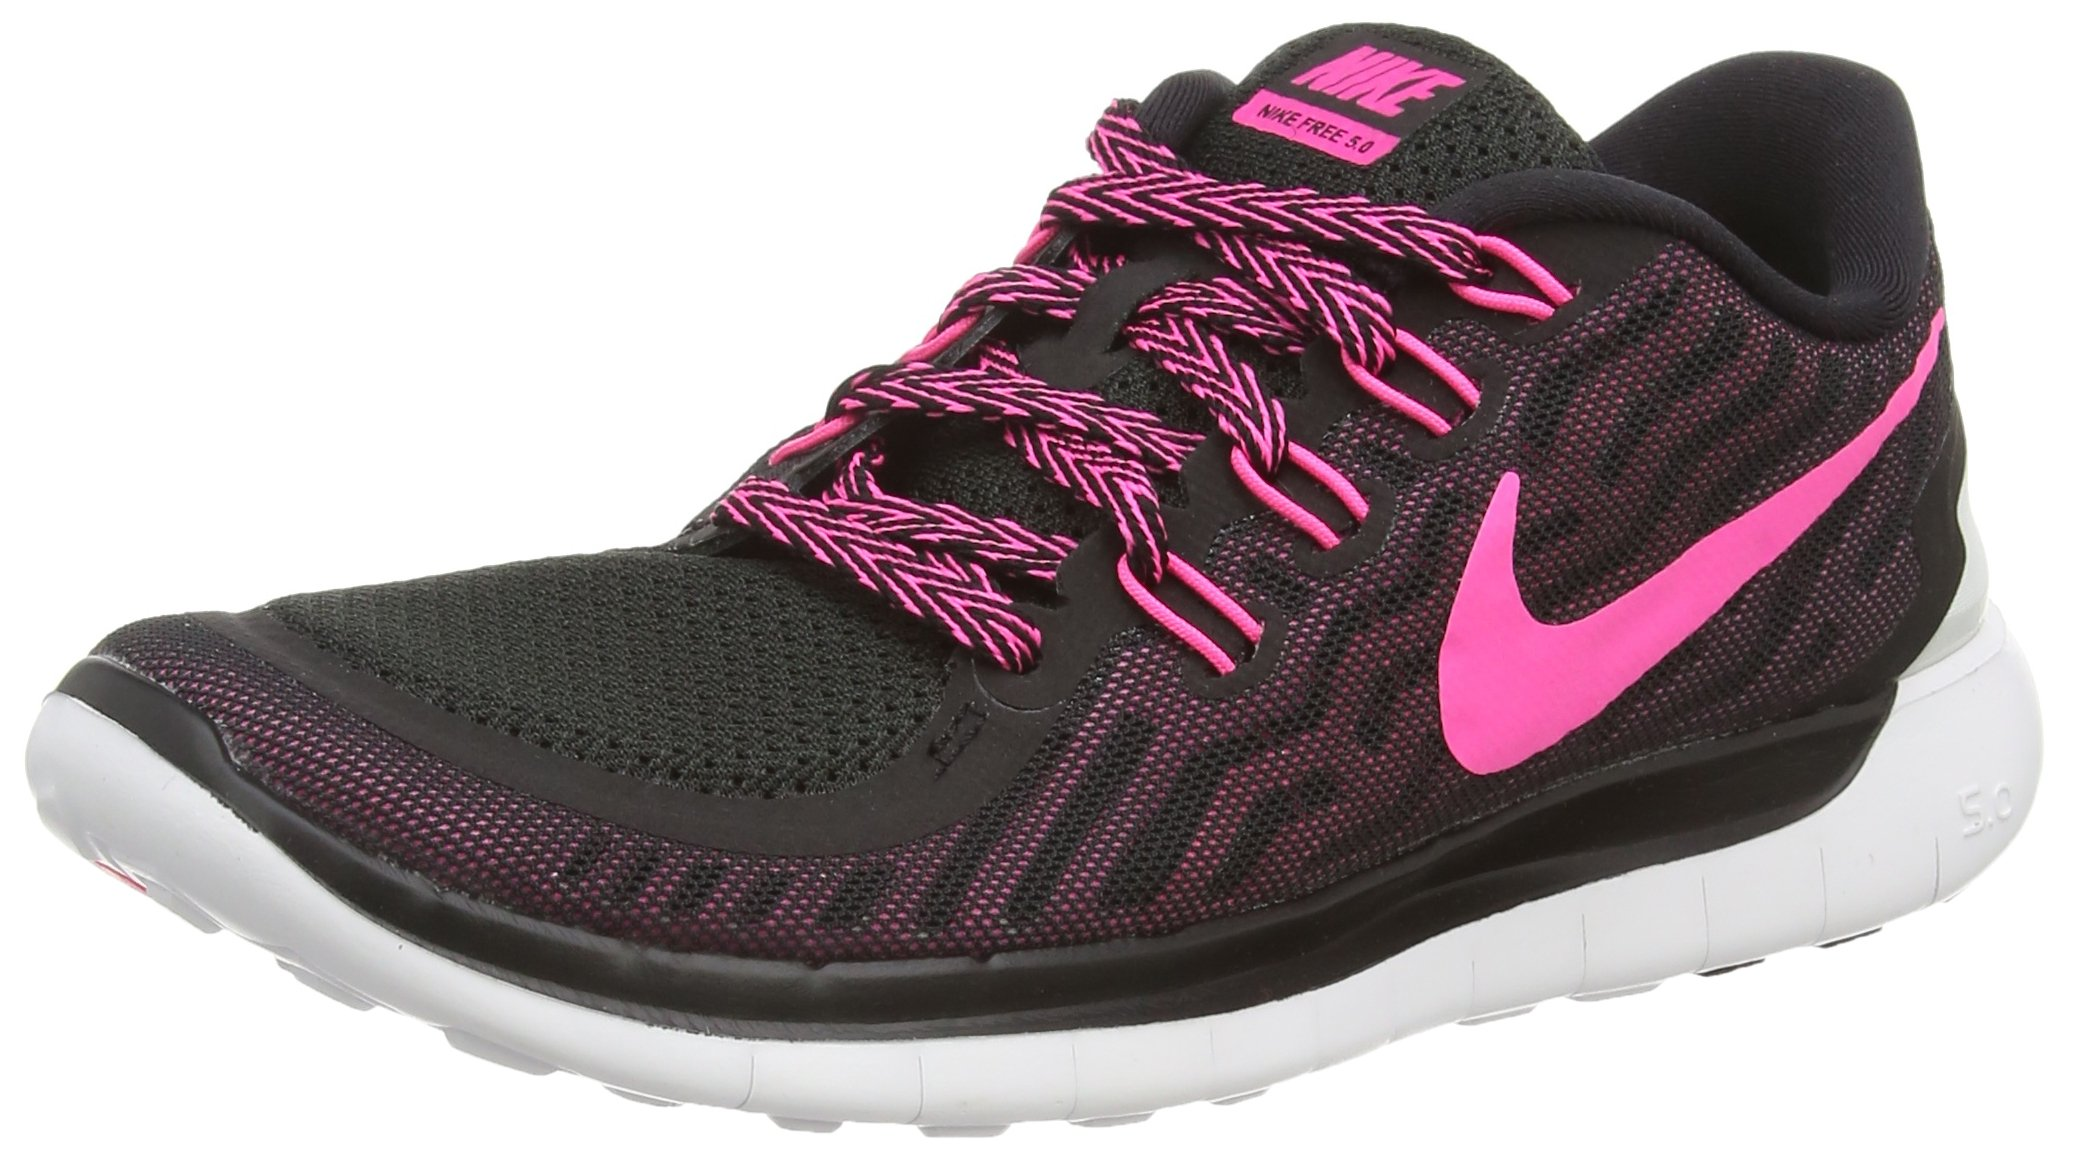 1fed52309674 Galleon - NIKE Women s Free 5.0 Running Shoes Black Pink Size 8 M US